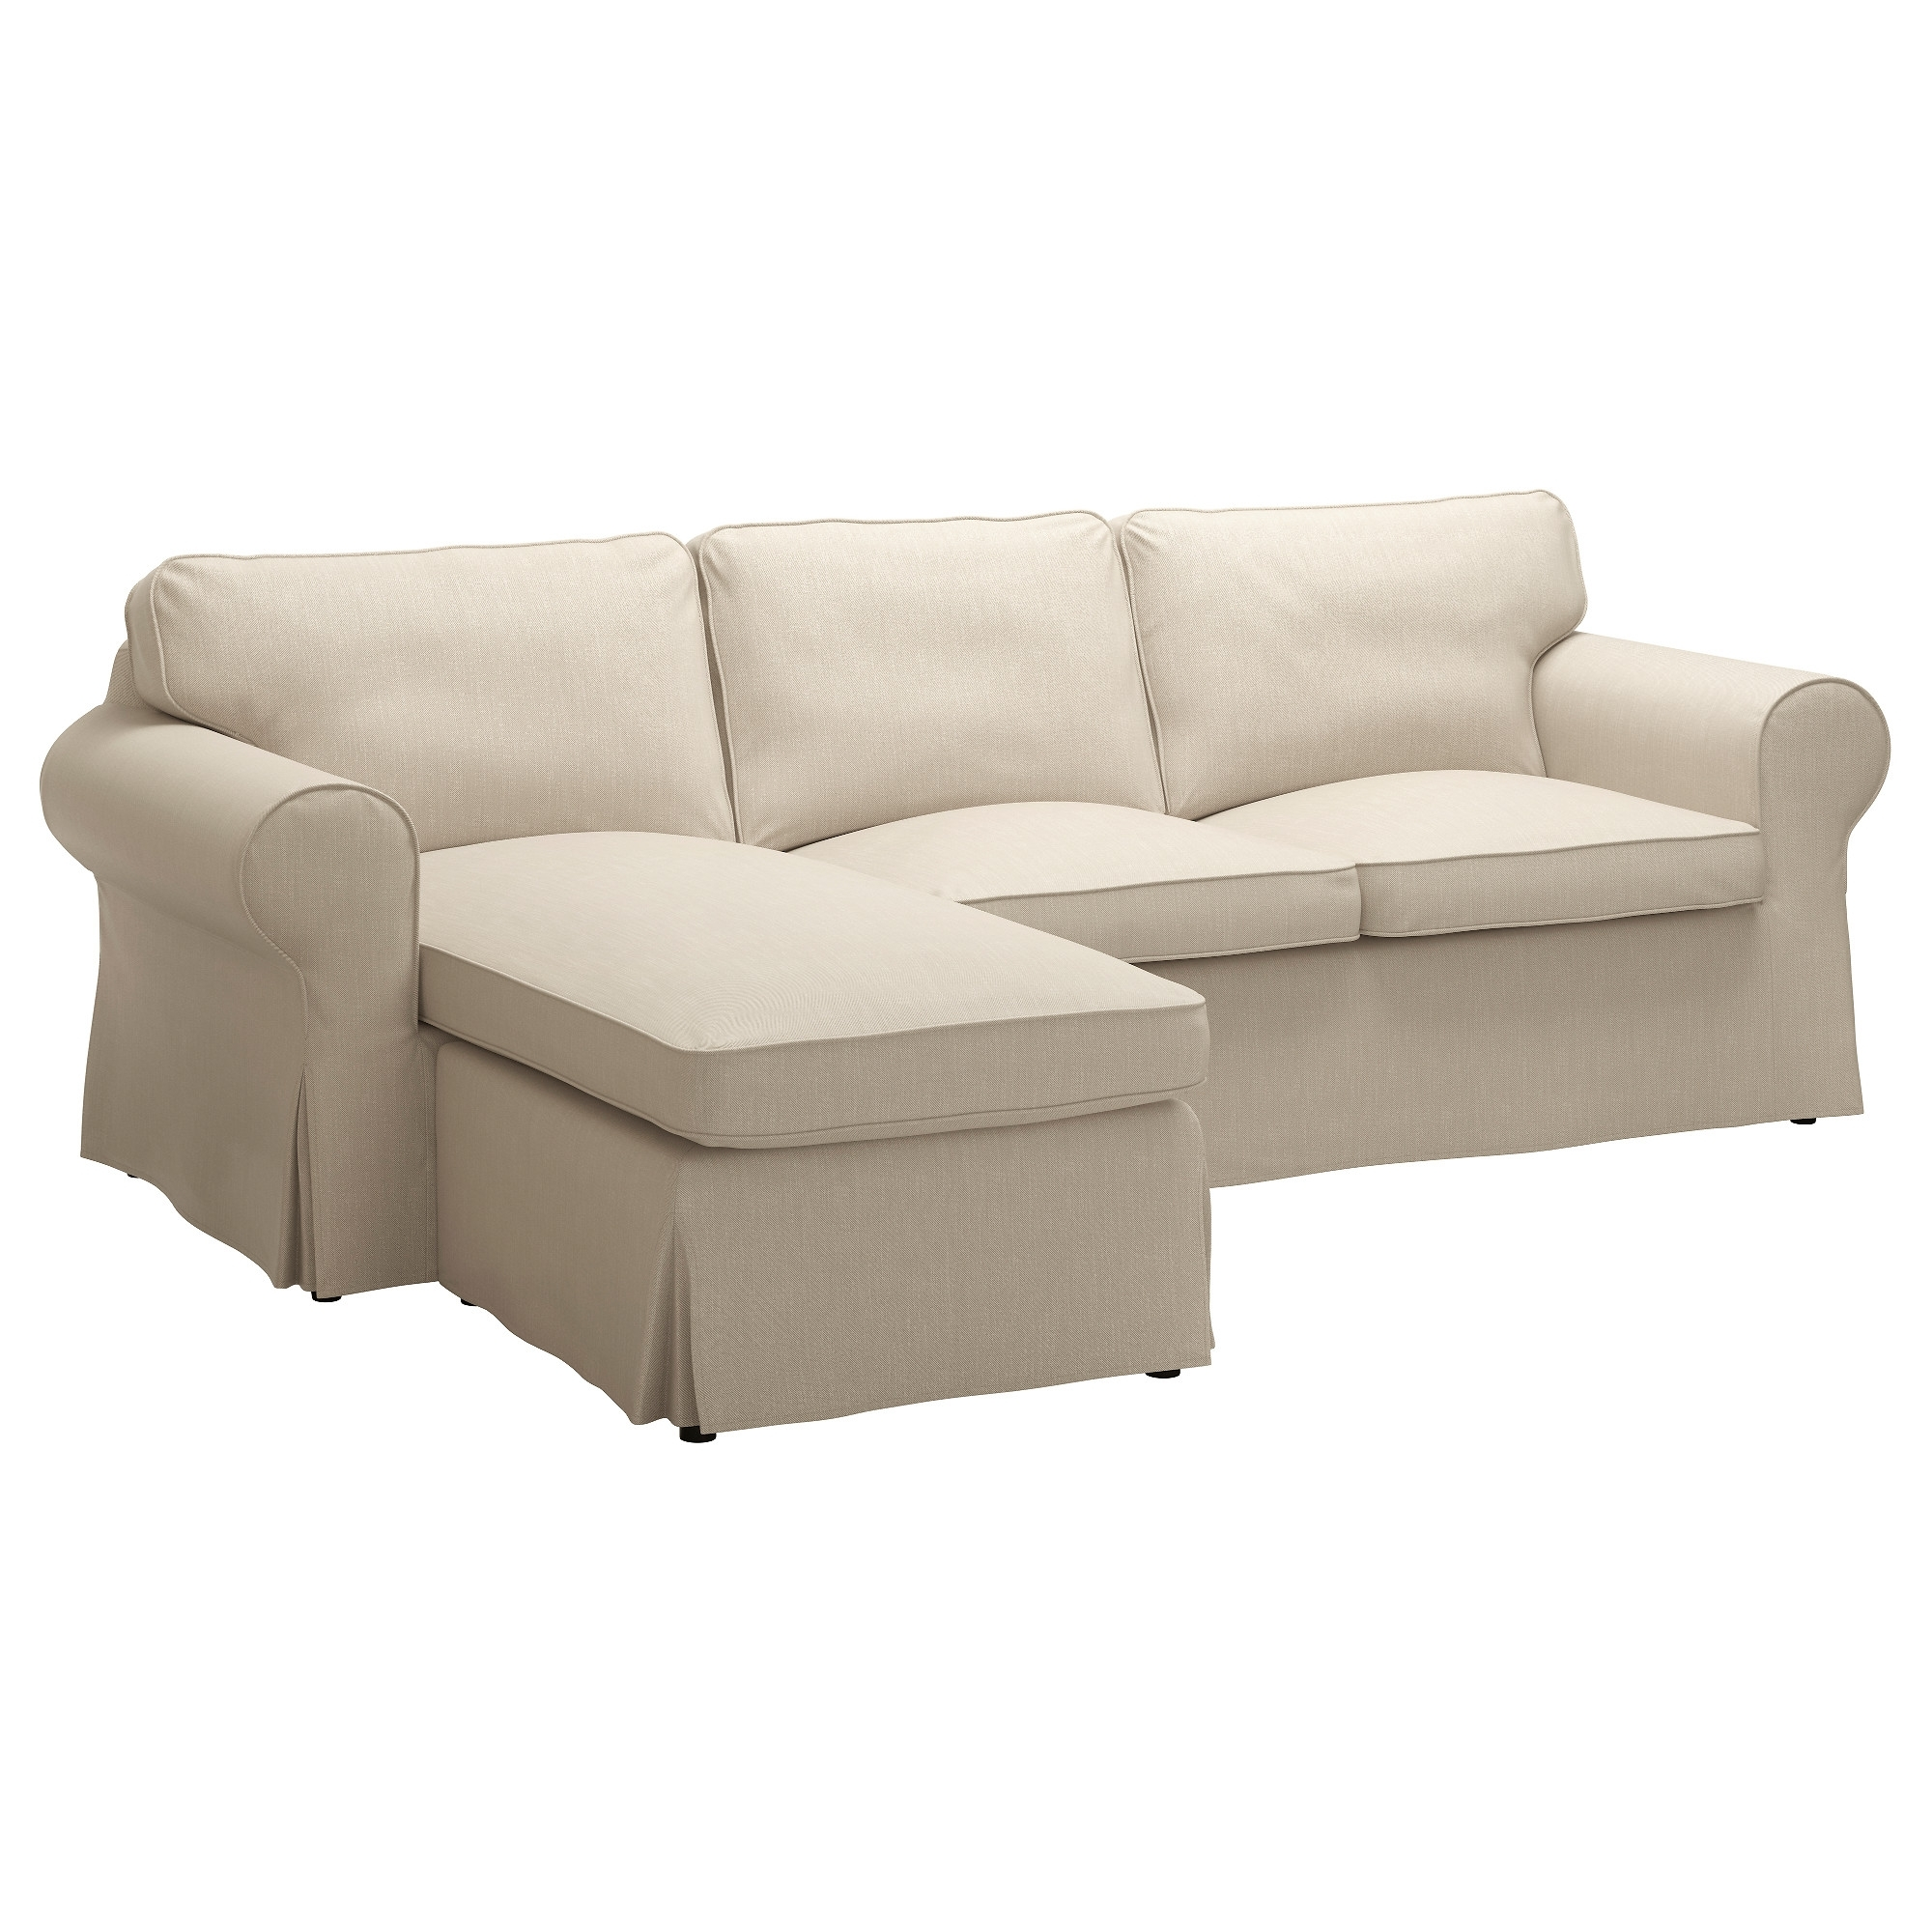 Current Ektorp Sofa – With Chaise/nordvalla Light Blue – Ikea With Chaise Sofas (View 11 of 15)